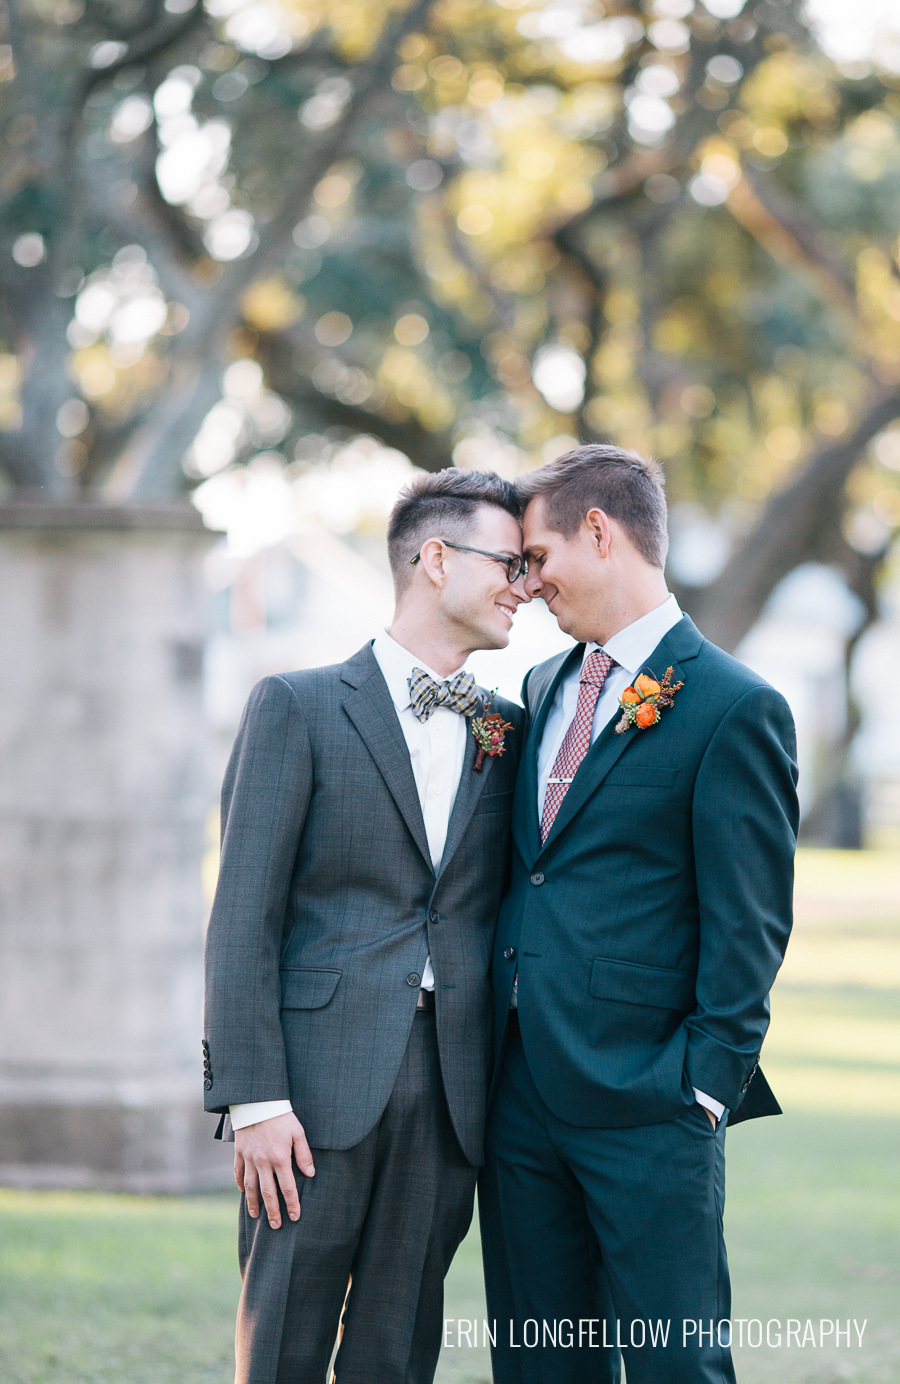 Gay Wedding Photography 53.jpg